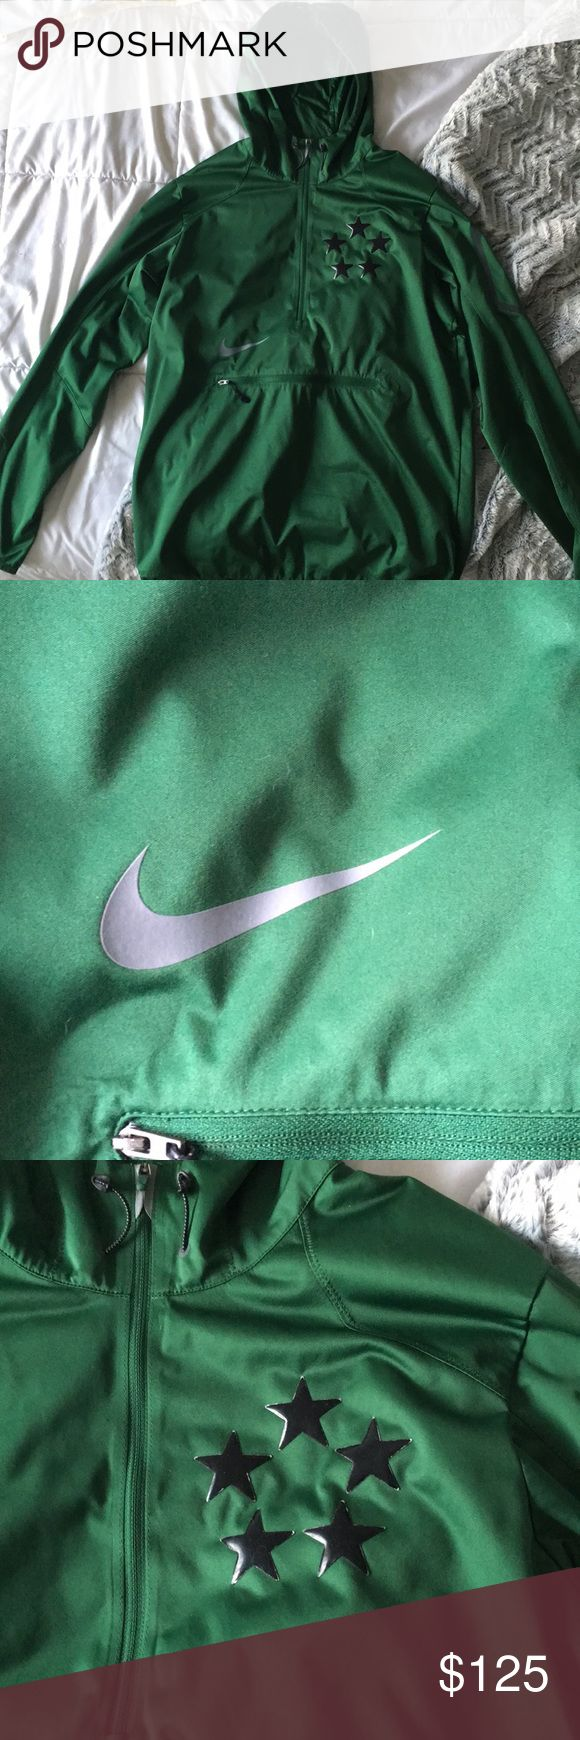 Nike half zip men's football jacket My brother's Nike jacket with a front belly pocket (kangaroo pouch style) and half zip. It's a beautiful emerald green color and still in great condition! Small football logo on the hood as included in the pictures and drawstring adjusting bottom and hood. A pocket on the left arm perfect for a phone. This jacket is NOT waterproof. Nike Jackets & Coats Windbreakers